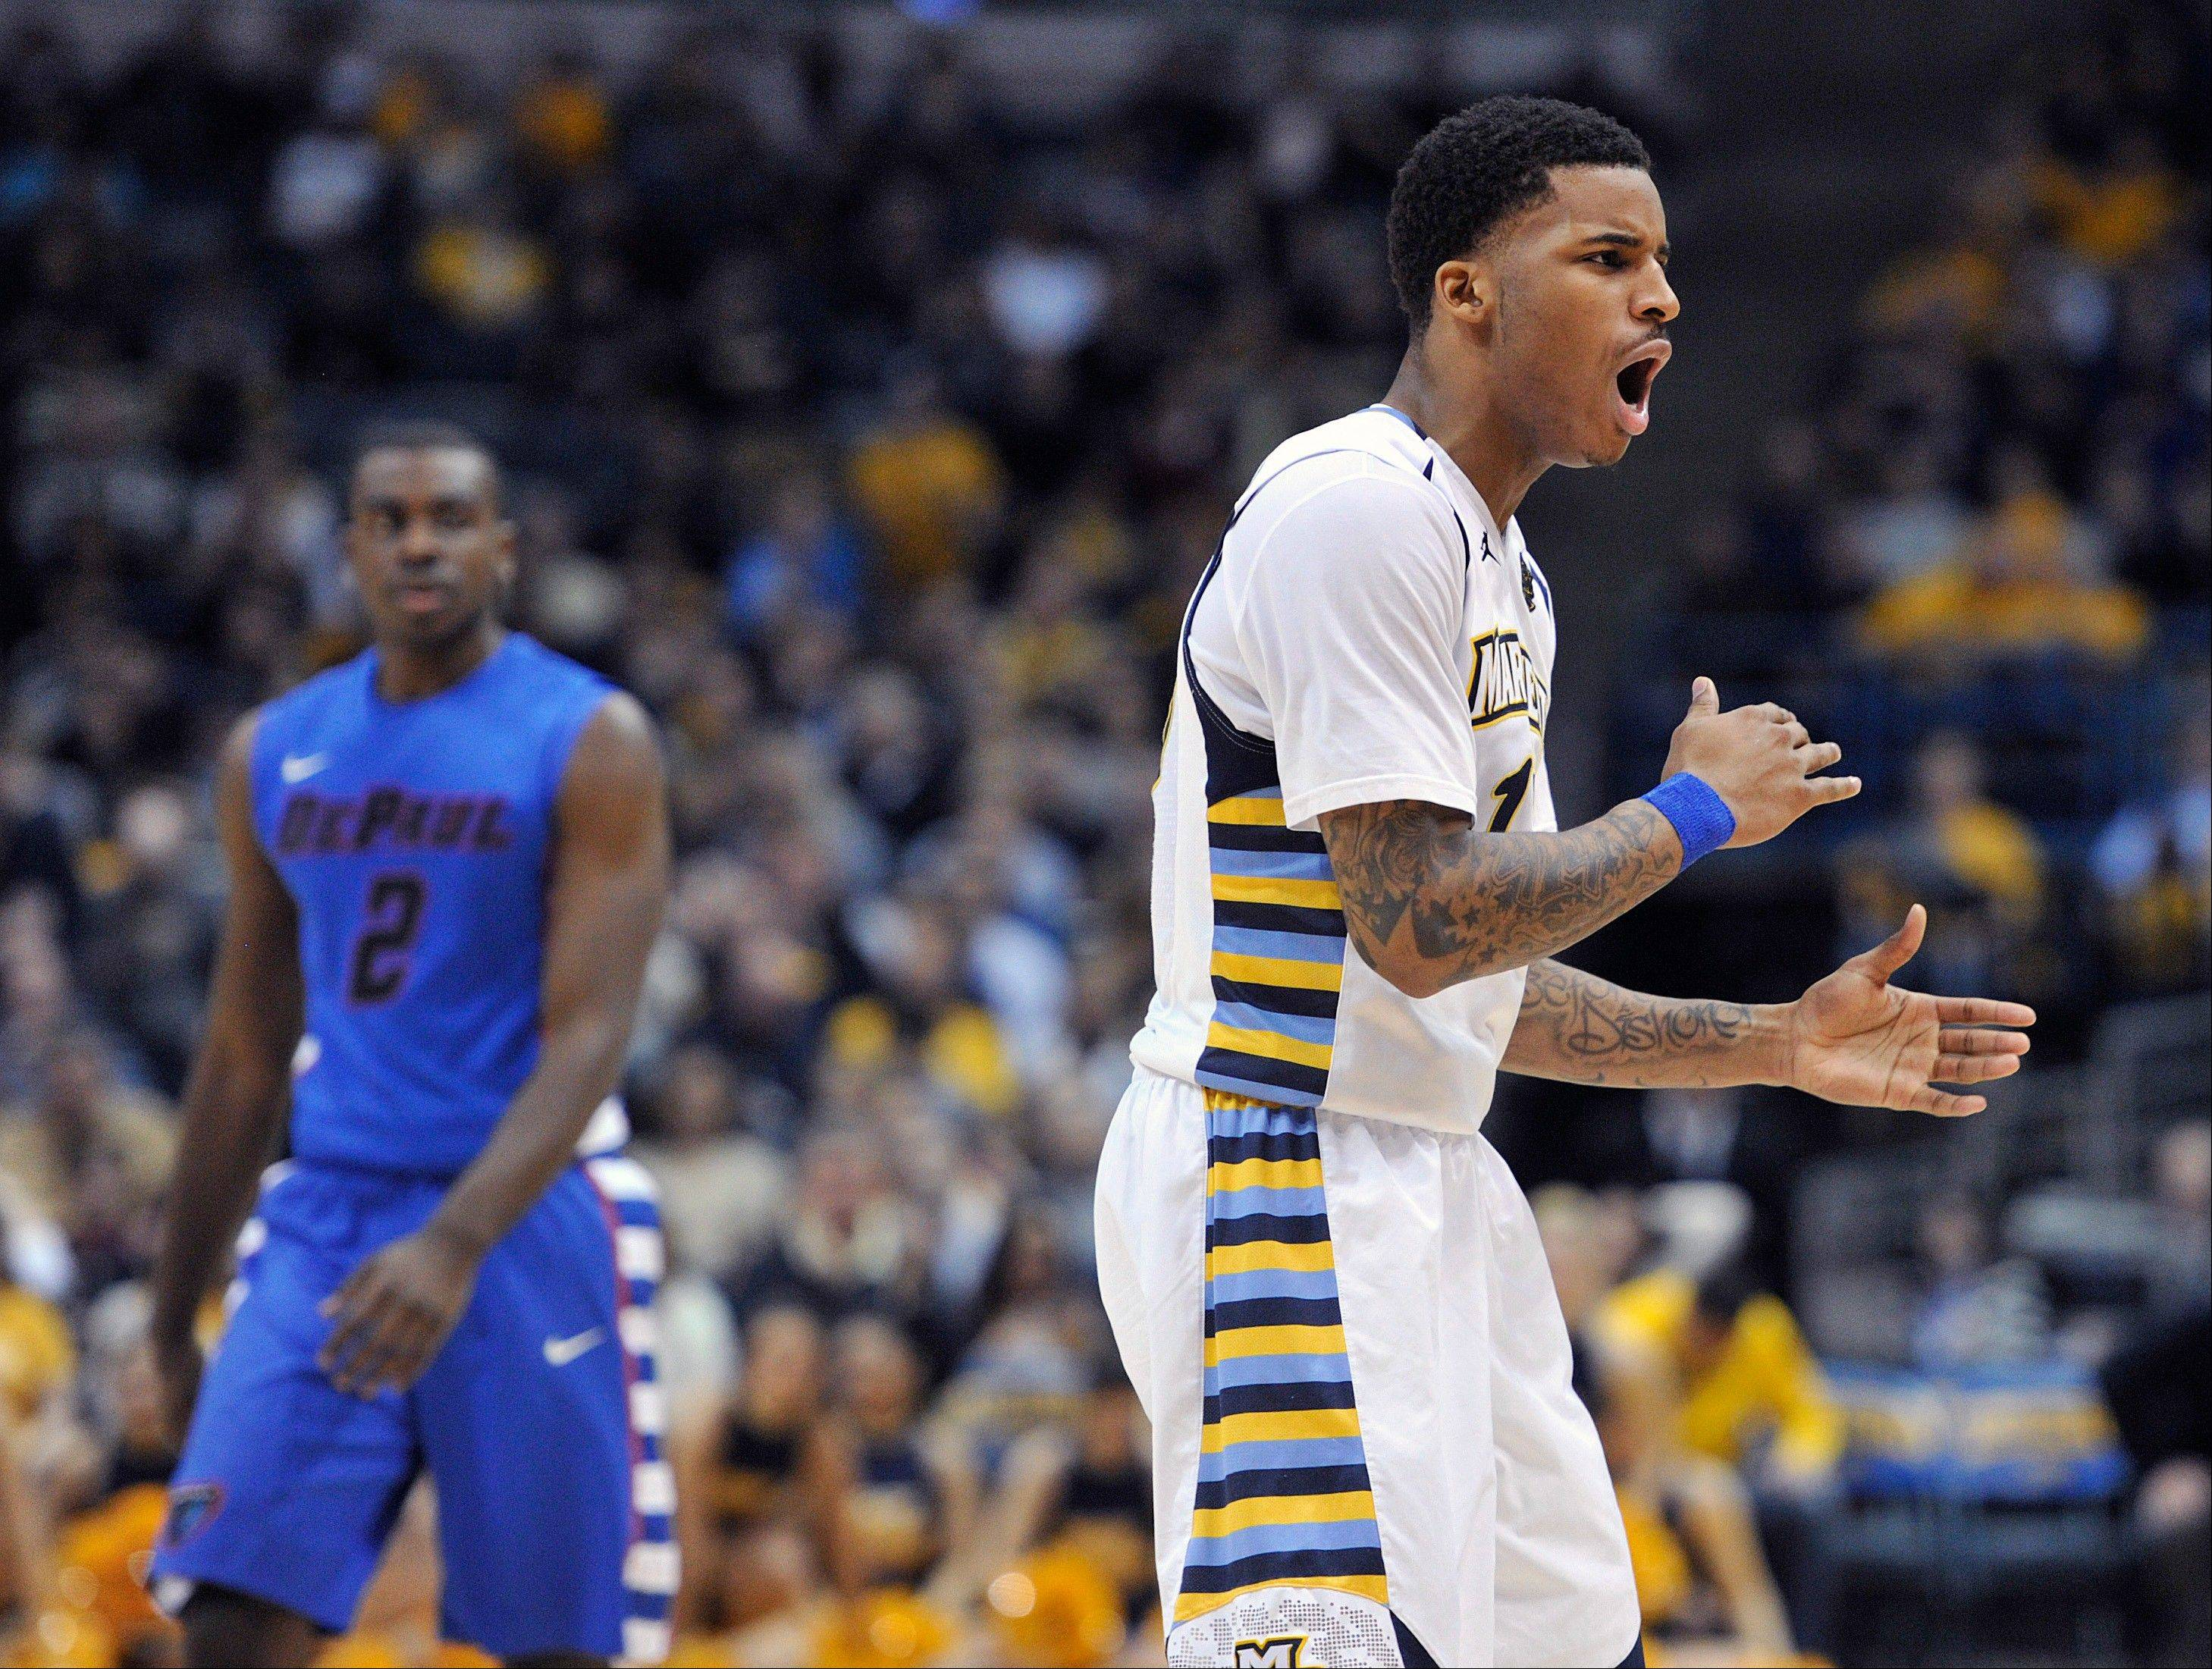 DePaul's Edwind McGhee, left, walks toward the bench as Marquette's Vander Blue celebrates a basket during the second half of an NCAA college basketball game Saturday, Feb. 9, 2013, in Milwaukee. (AP Photo/Jim Prisching)